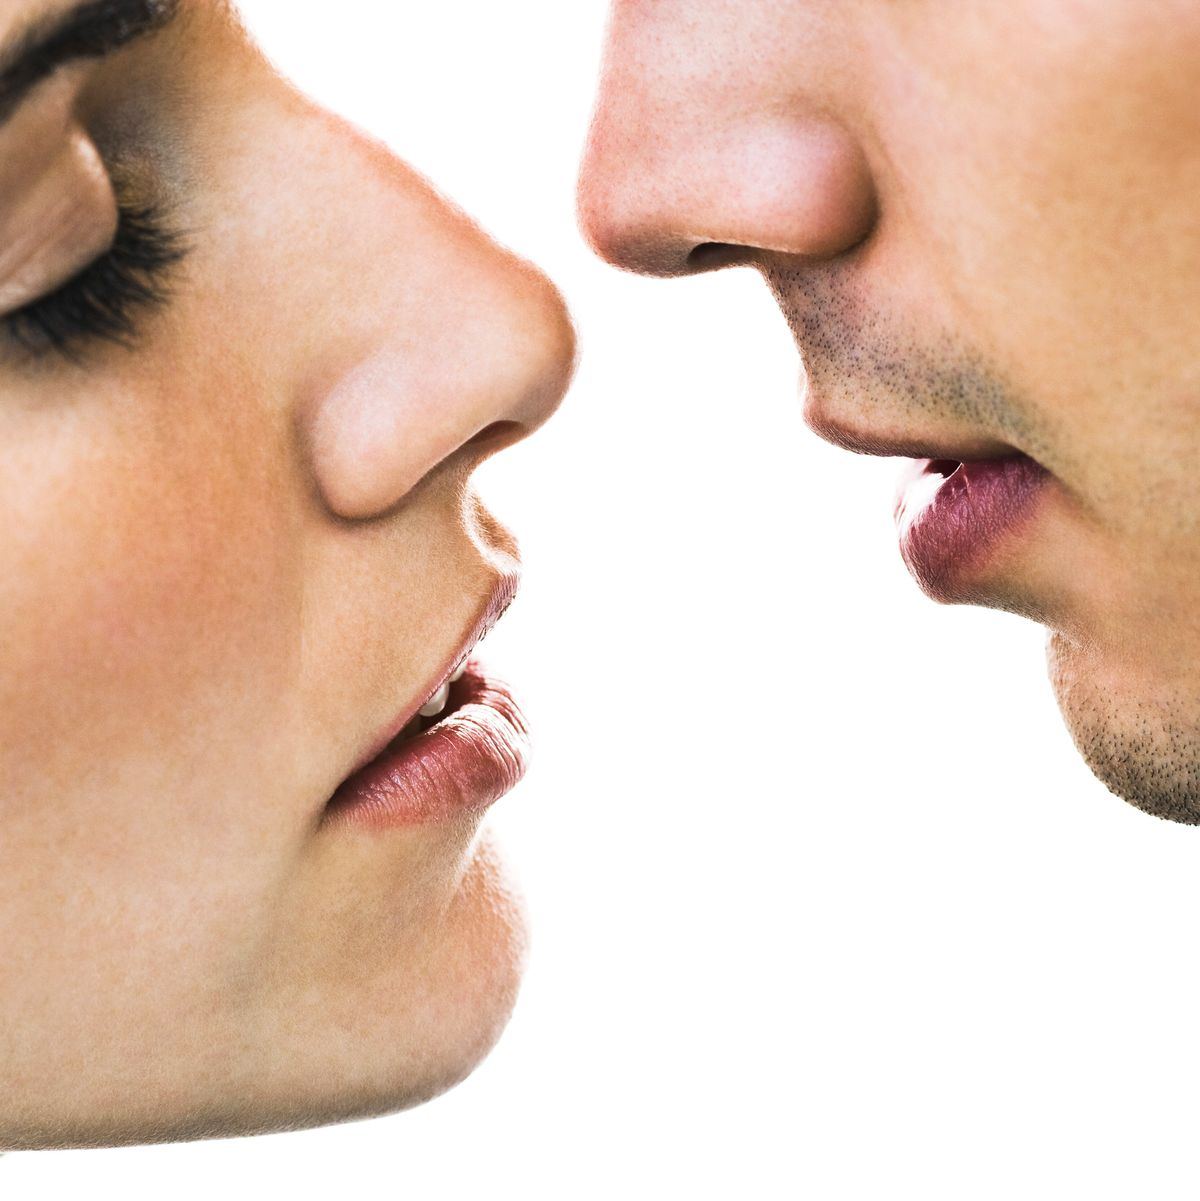 Men Can Smell When Women Are Aroused: Research